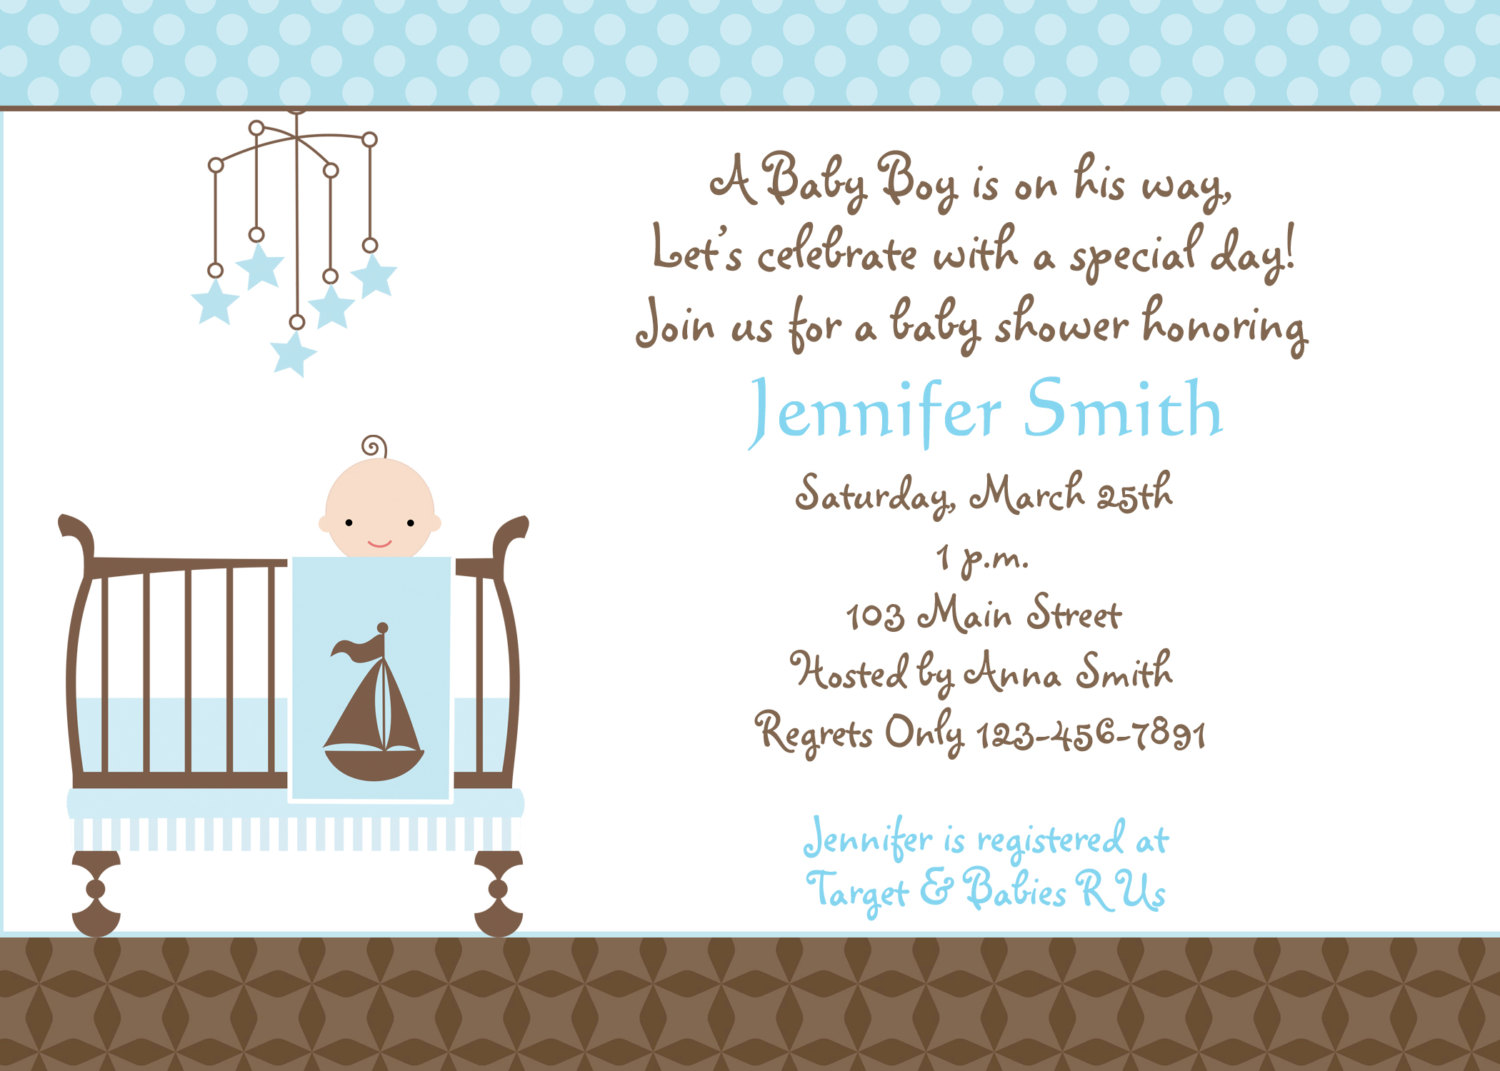 Full Size of Baby Shower:baby Shower Halls With Baby Shower At The Park Plus Recuerdos De Baby Shower Together With Fun Baby Shower Games As Well As Baby Shower Hostess Gifts And Baby Shower Verses Baby Shower Invitation Wording Outstanding Baby Shower Invite Wording Boy Which Can Be Used As Free Baby Shower Invitations Outstanding Baby Shower Invite Wording Boy Which Can Be Used As Free